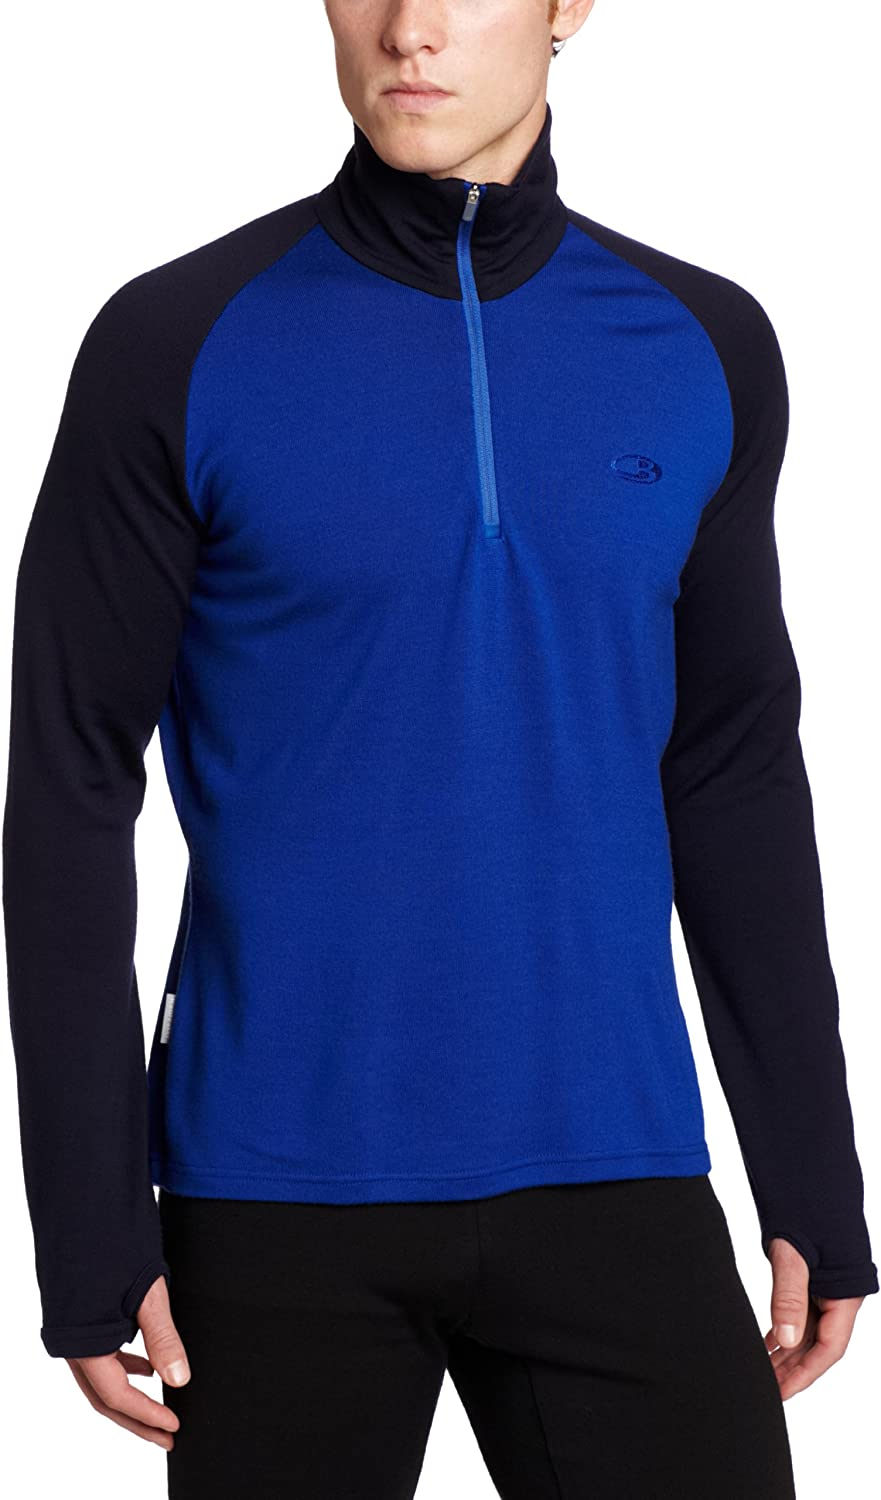 Icebreaker Bodyfit 260 Tech Top Long Sleeve Half Zip-Men's